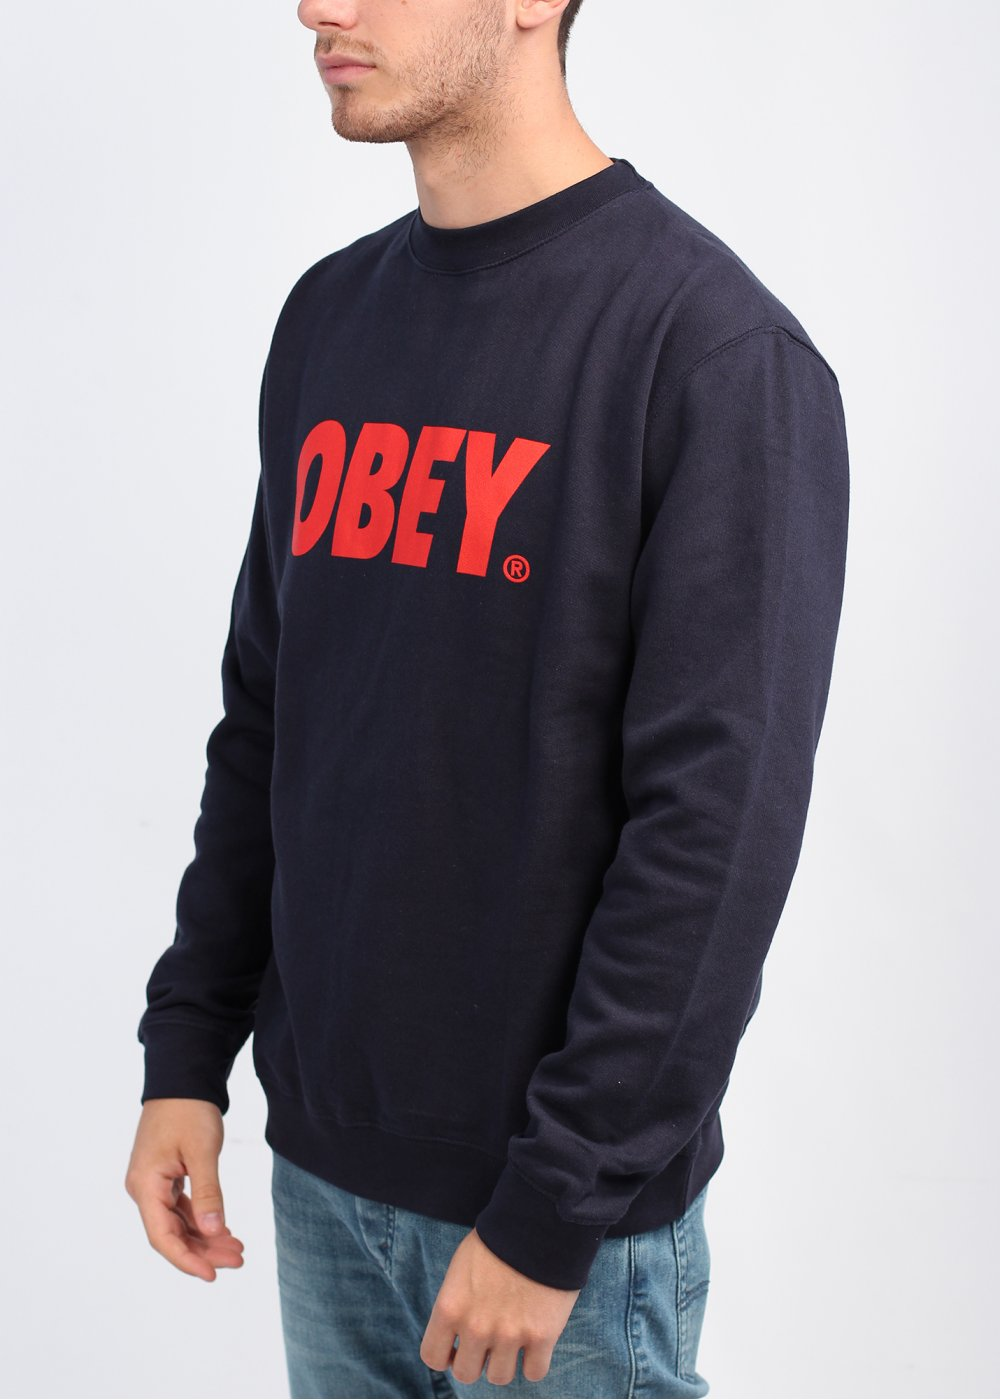 Obey Front Jumper - Navy/Red